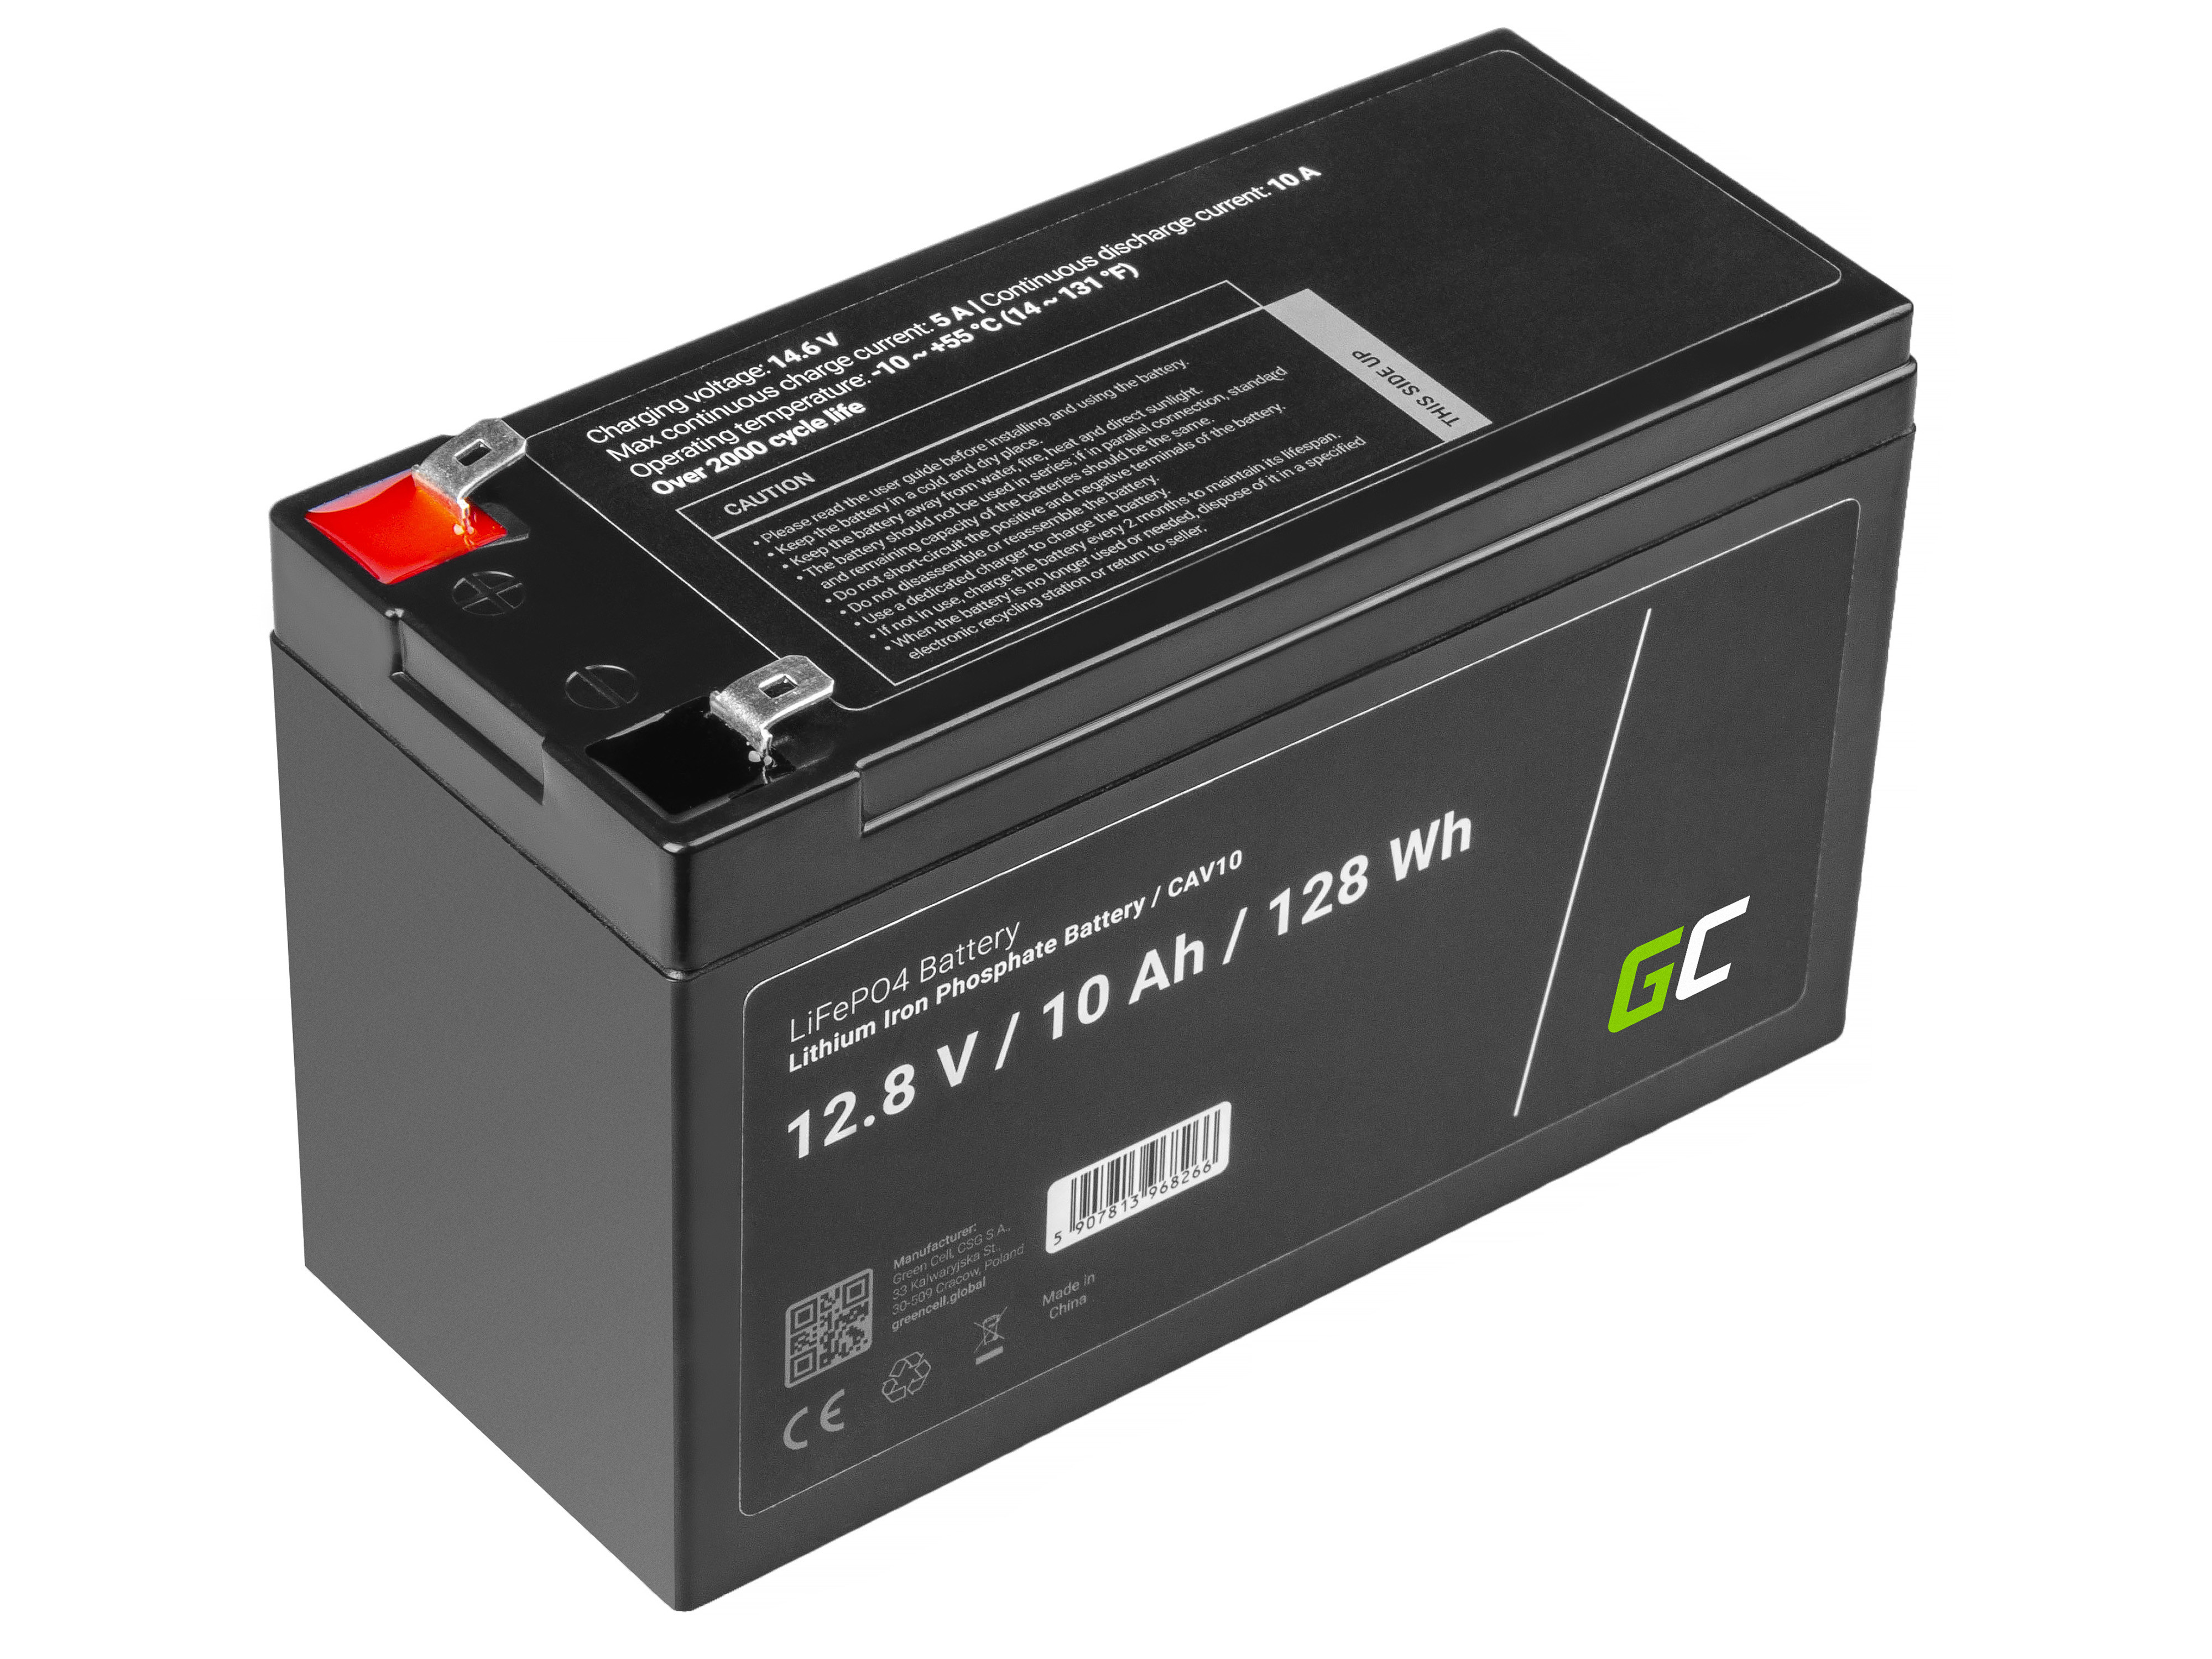 Battery Lithium-iron-phosphate LiFePO4 Green Cell 12V 12.8V 10Ah for photovoltaic system, campers and boats